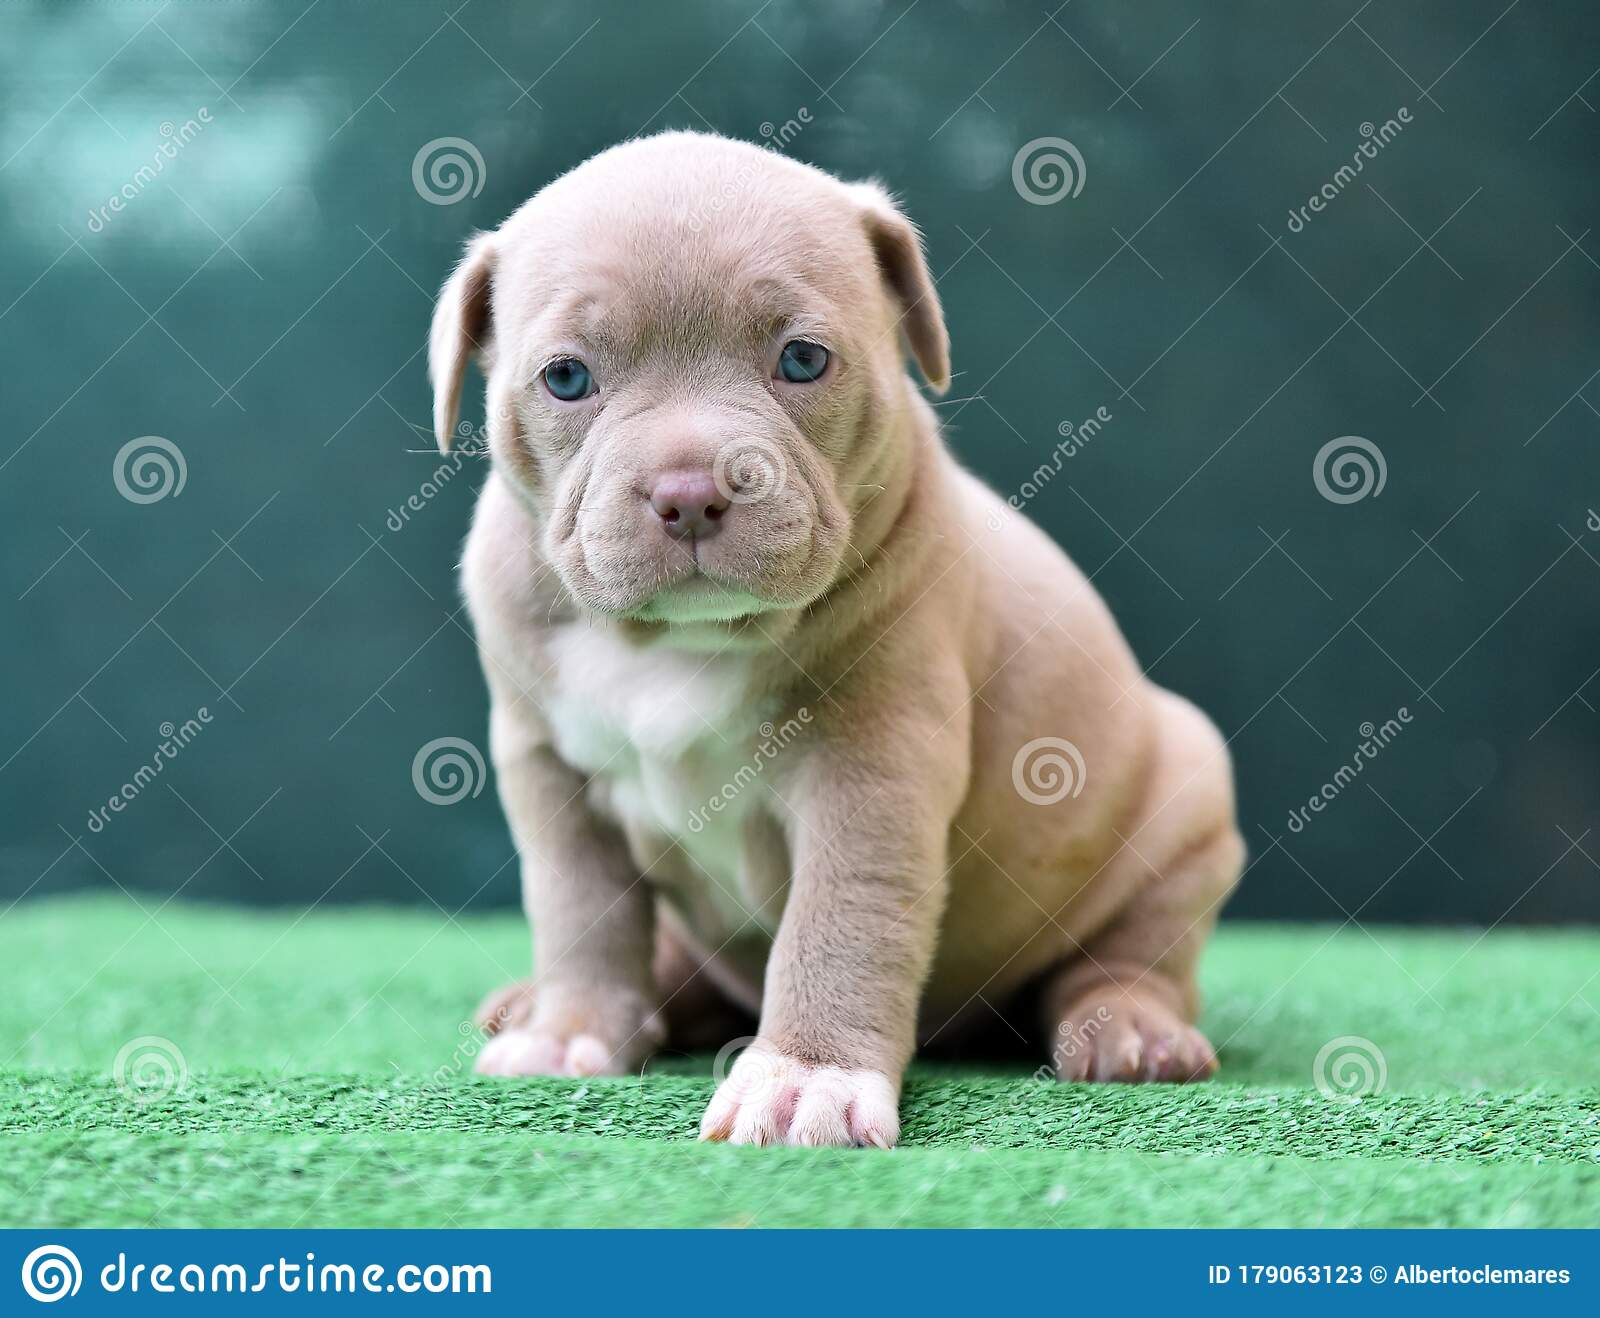 A Puppy American Bully Dog Stock Image Image Of Playing 179063123